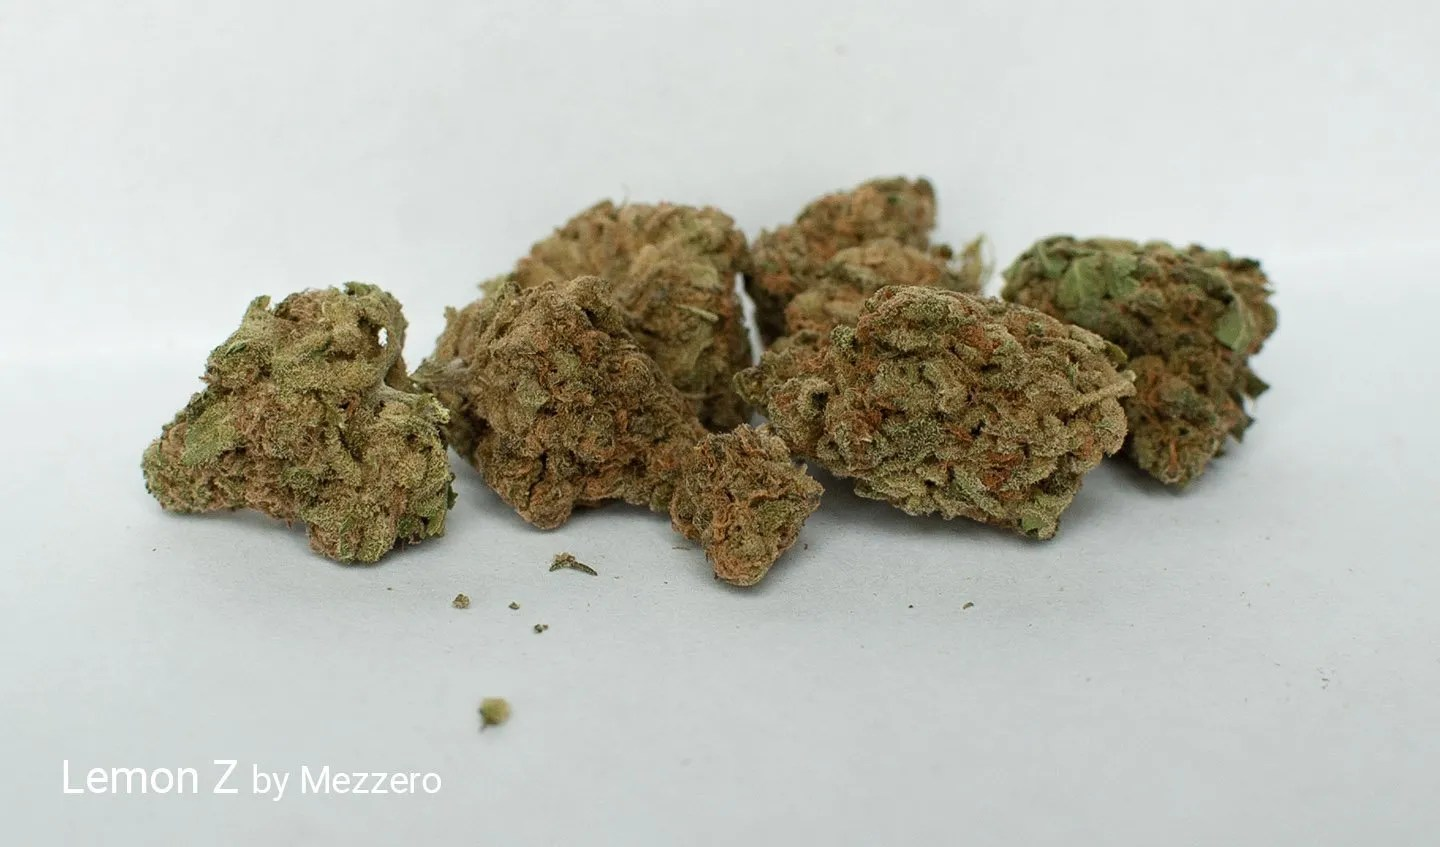 18.14% THC Lemon Z by Mezzerro